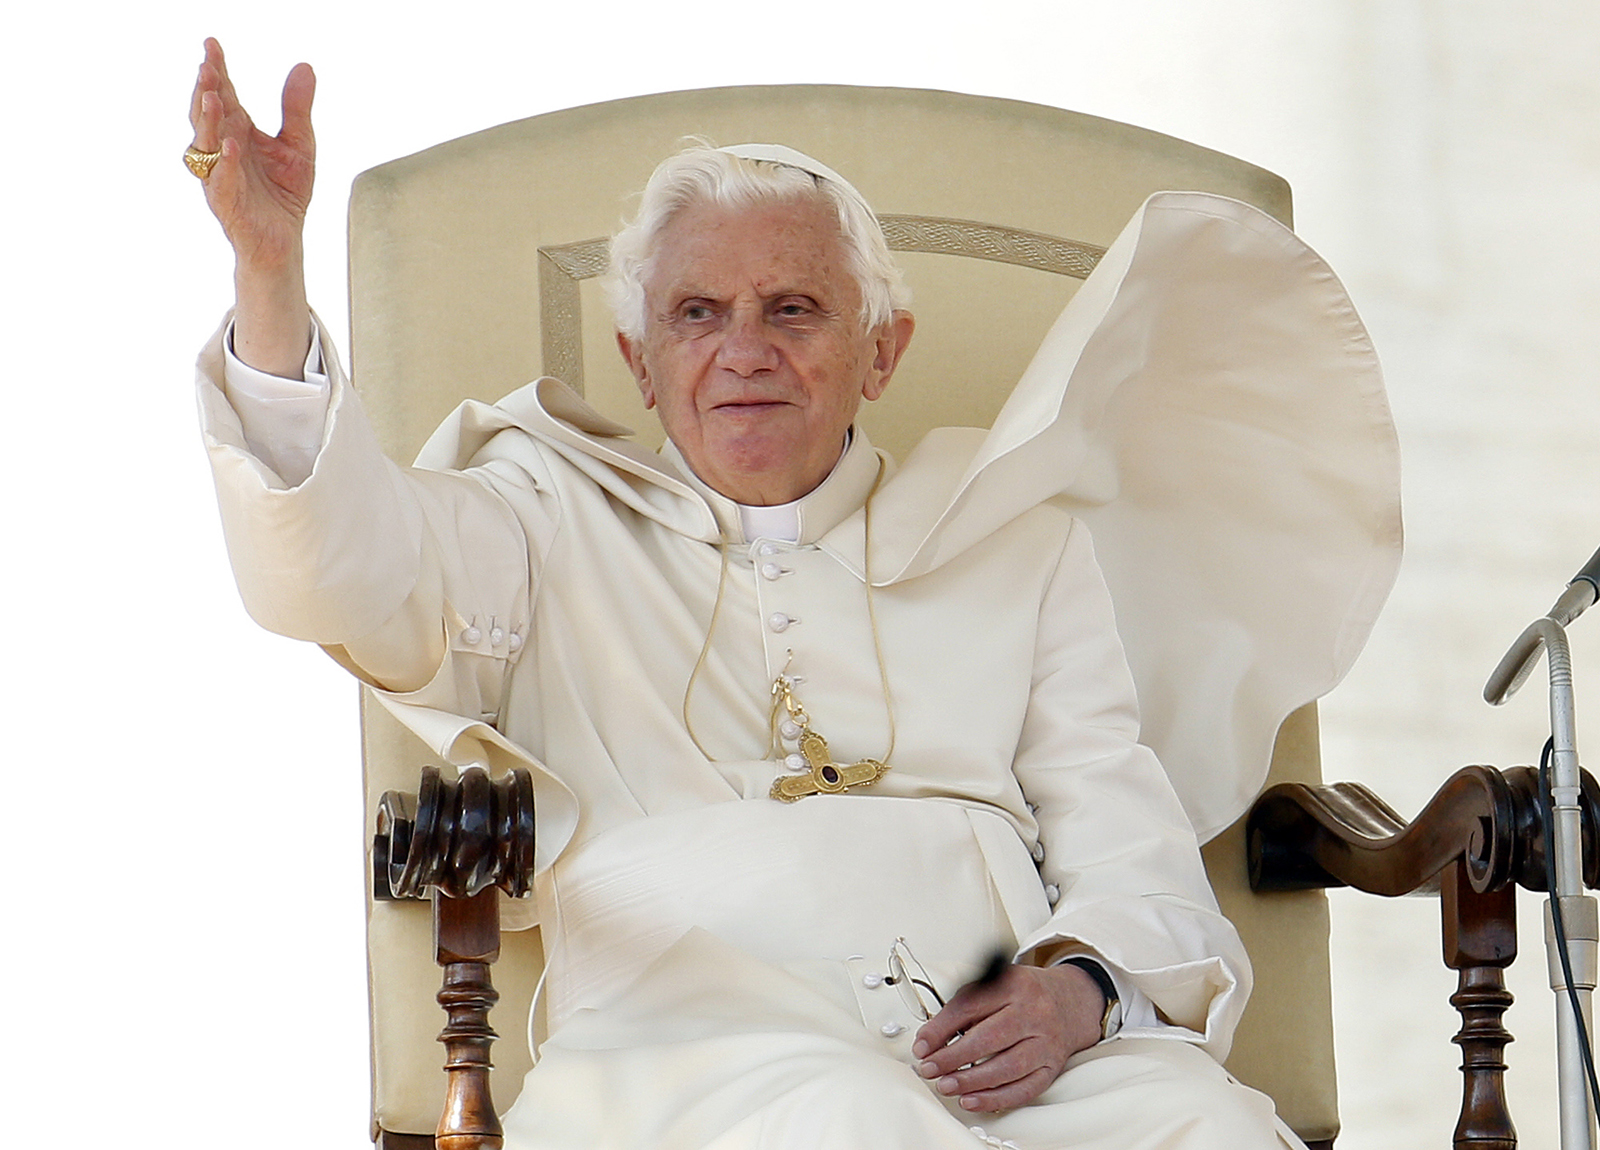 Pope Benedict XVI waves as a gust of wind blows his mantle during a general audience in St. Peter's Square, at the Vatican, Wednesday, Oct. 19, 2011. (AP Photo/Pier Paolo Cito)